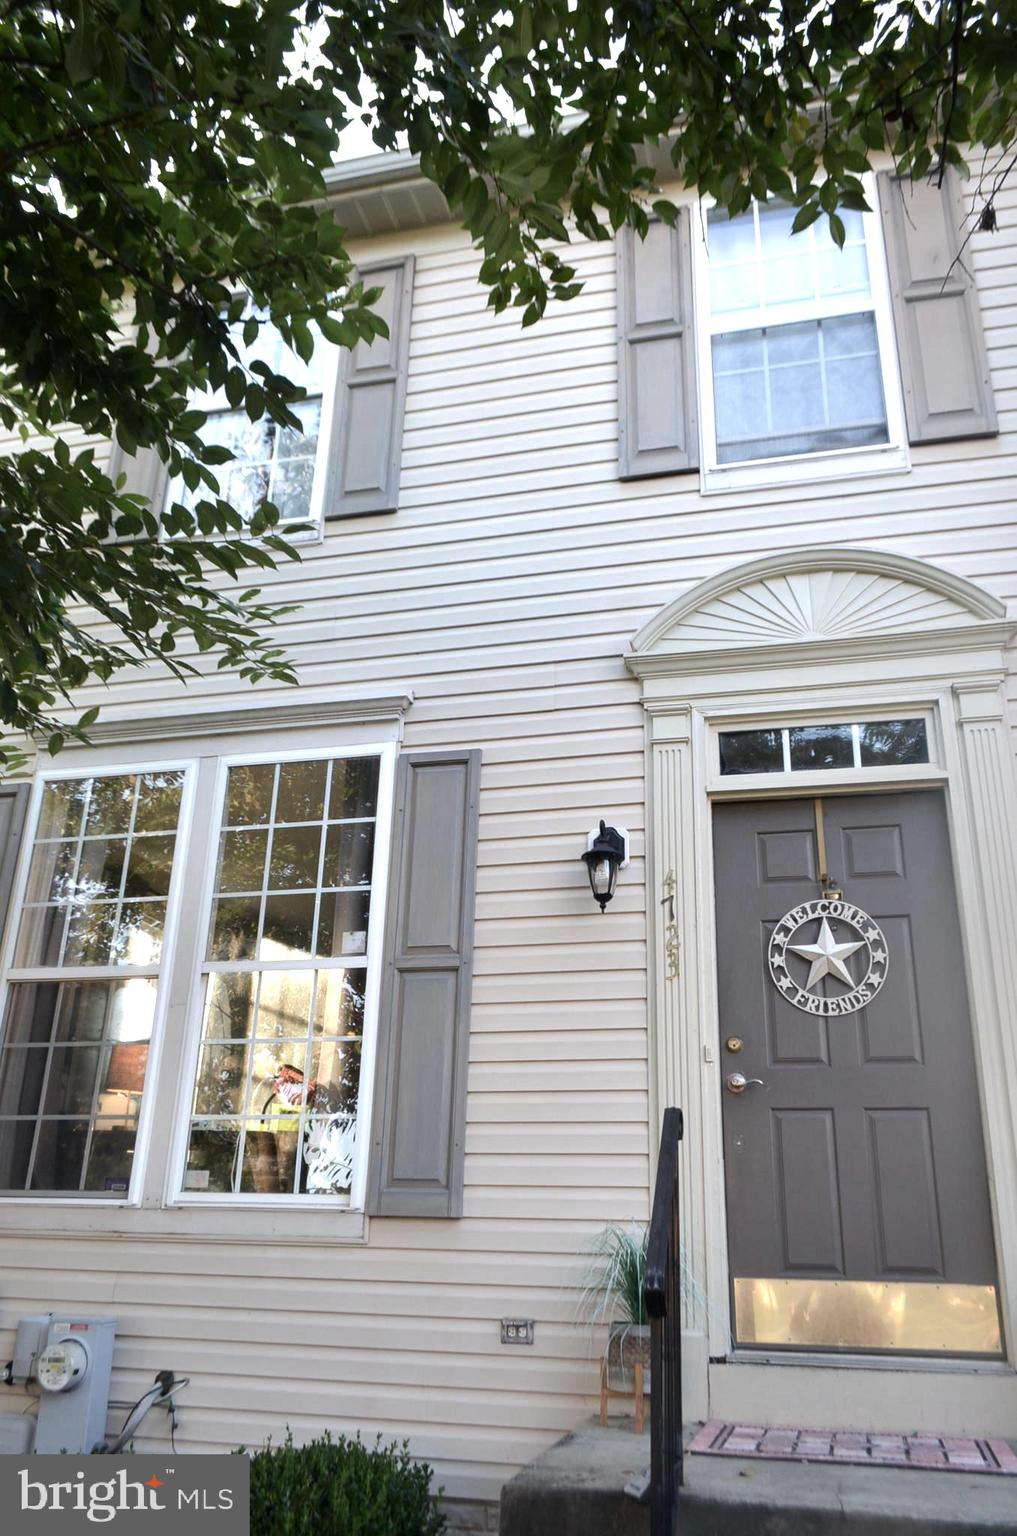 Great Opportunity  Vista Gardens end unit townhouse 3 bedrooms 2.5 baths Large open floor plan with